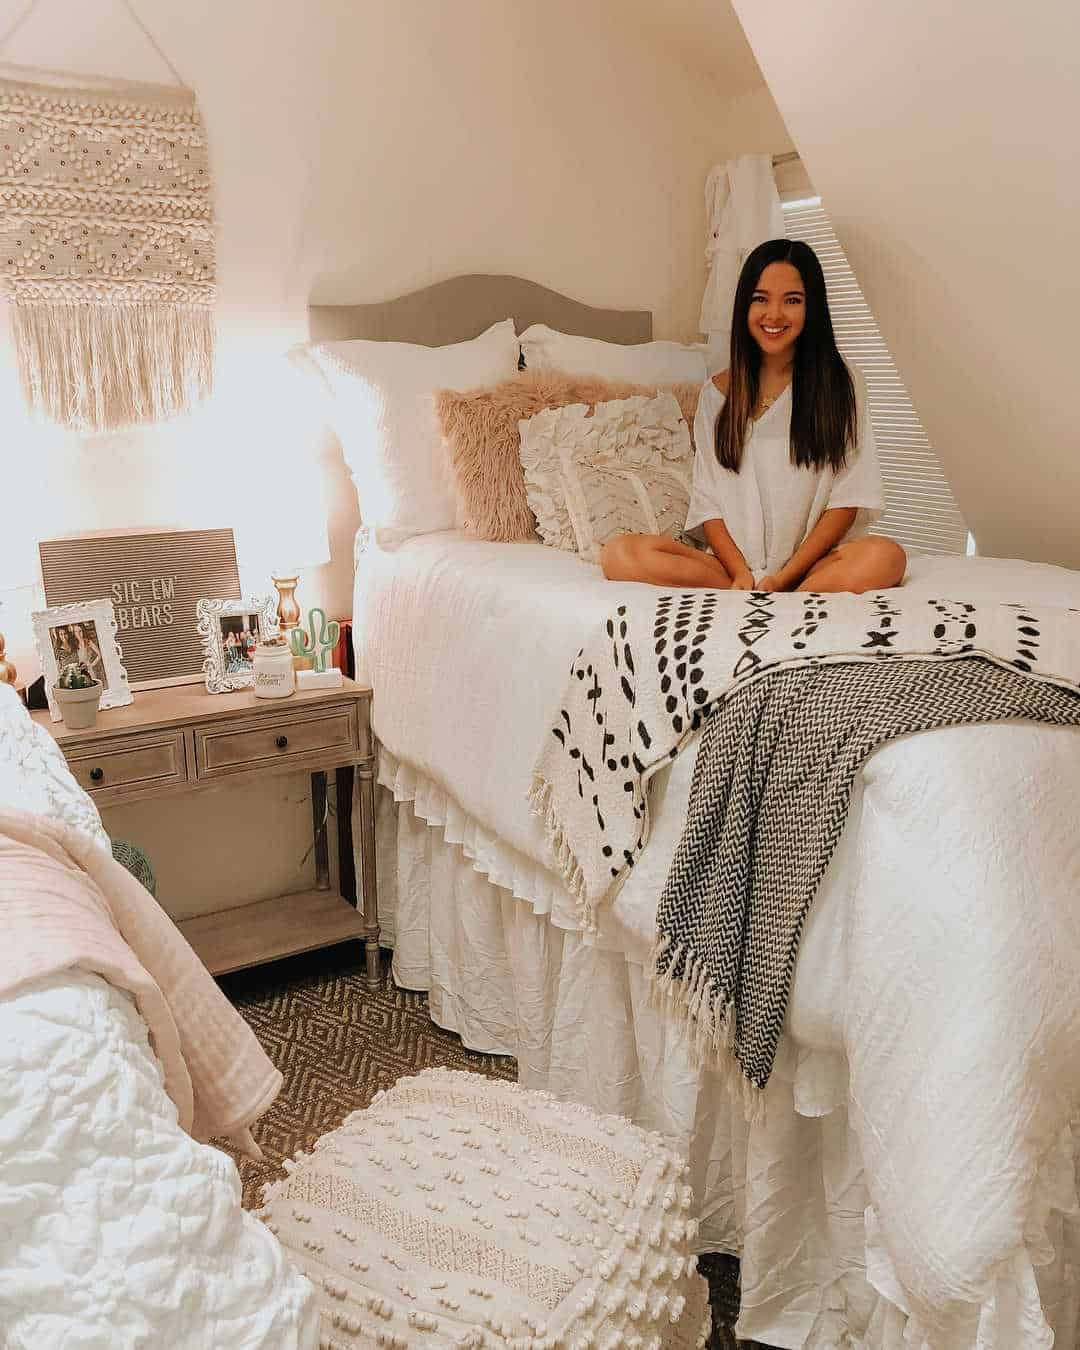 Dorm Room Plans: 14 Dorm Room Ideas That Are Melting Our Minds RN